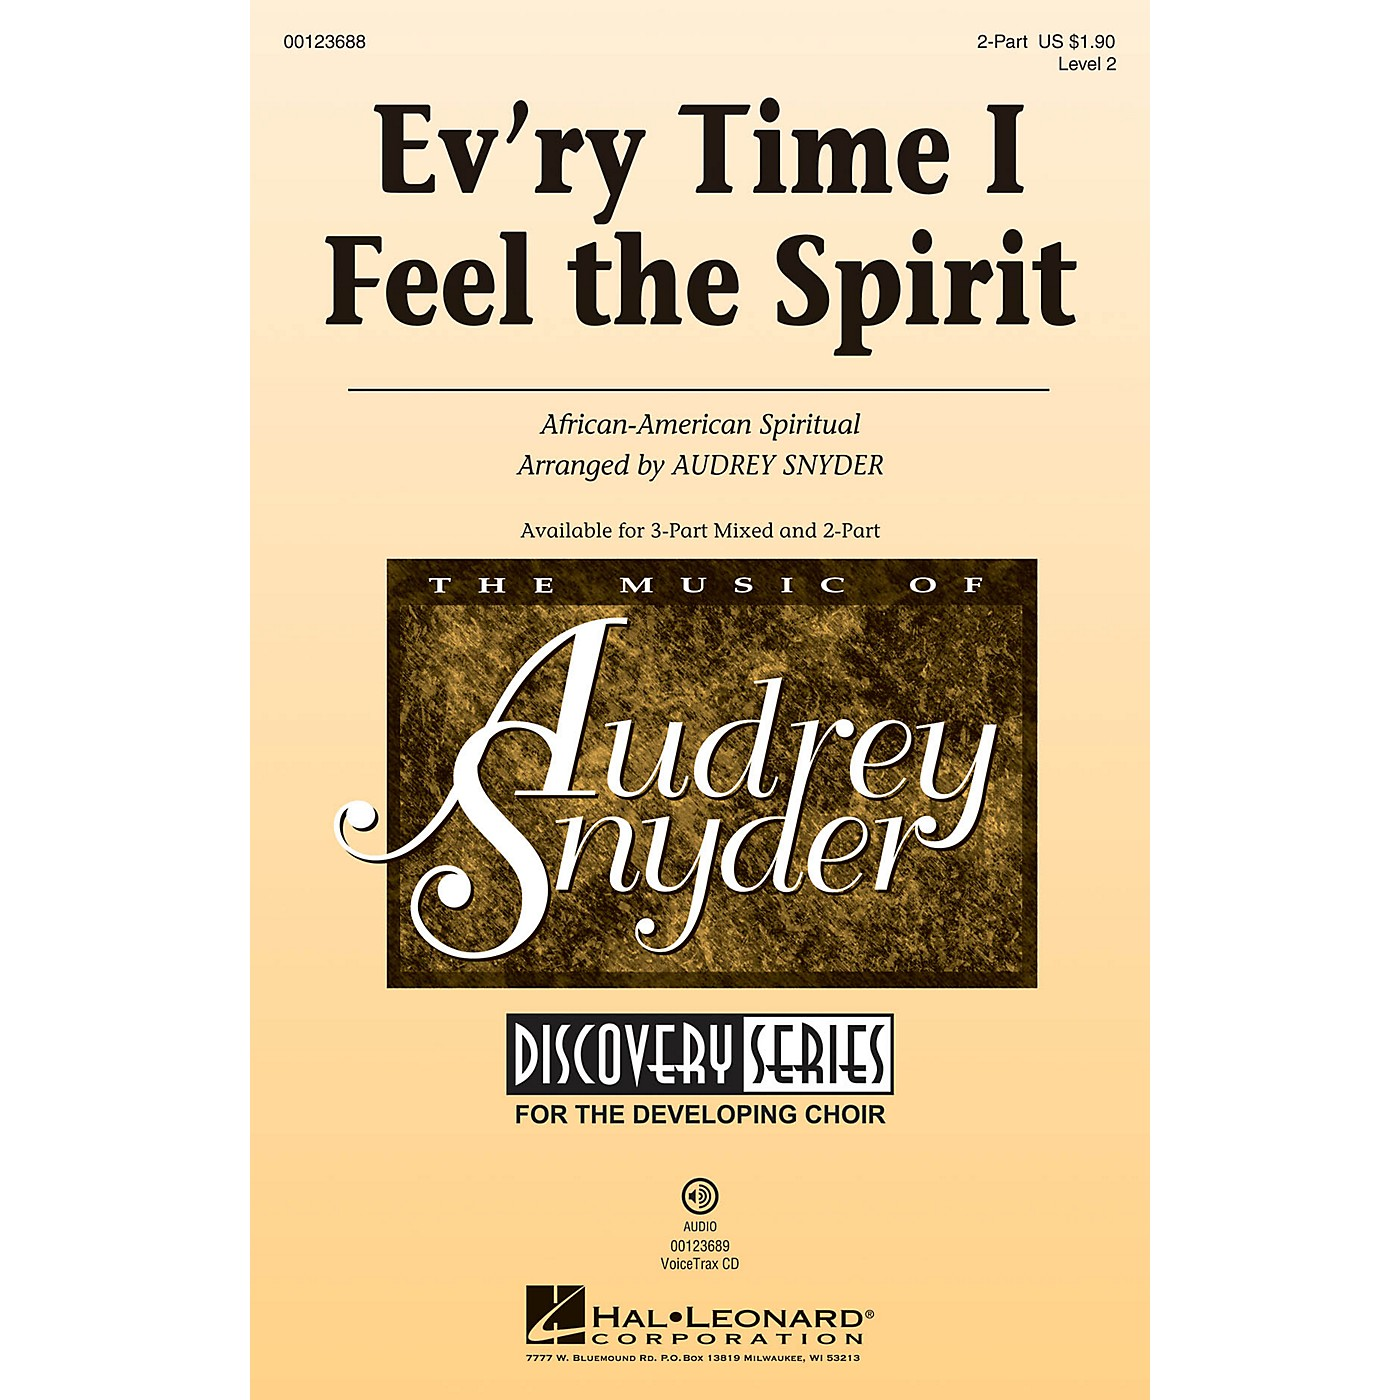 Hal Leonard Ev'ry Time I Feel The Spirit (Discovery Level 2) 2-Part arranged by Audrey Snyder thumbnail